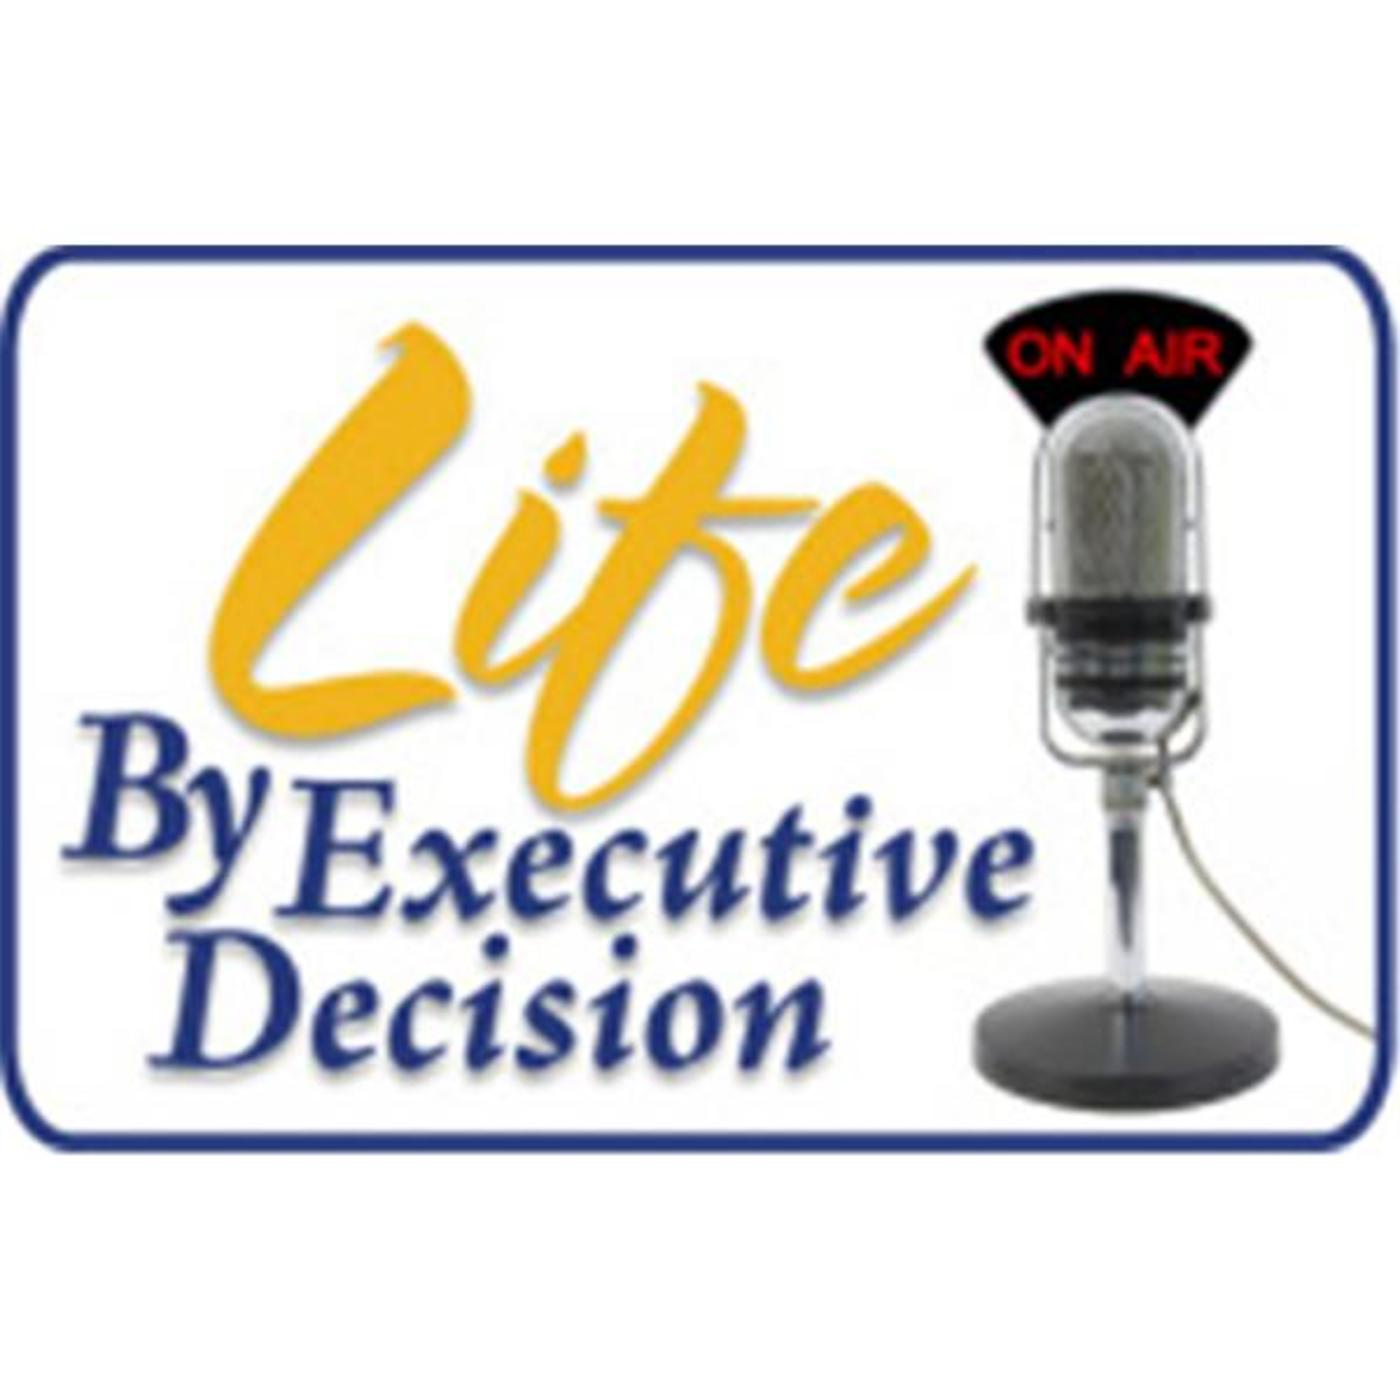 Life By Exec Decision